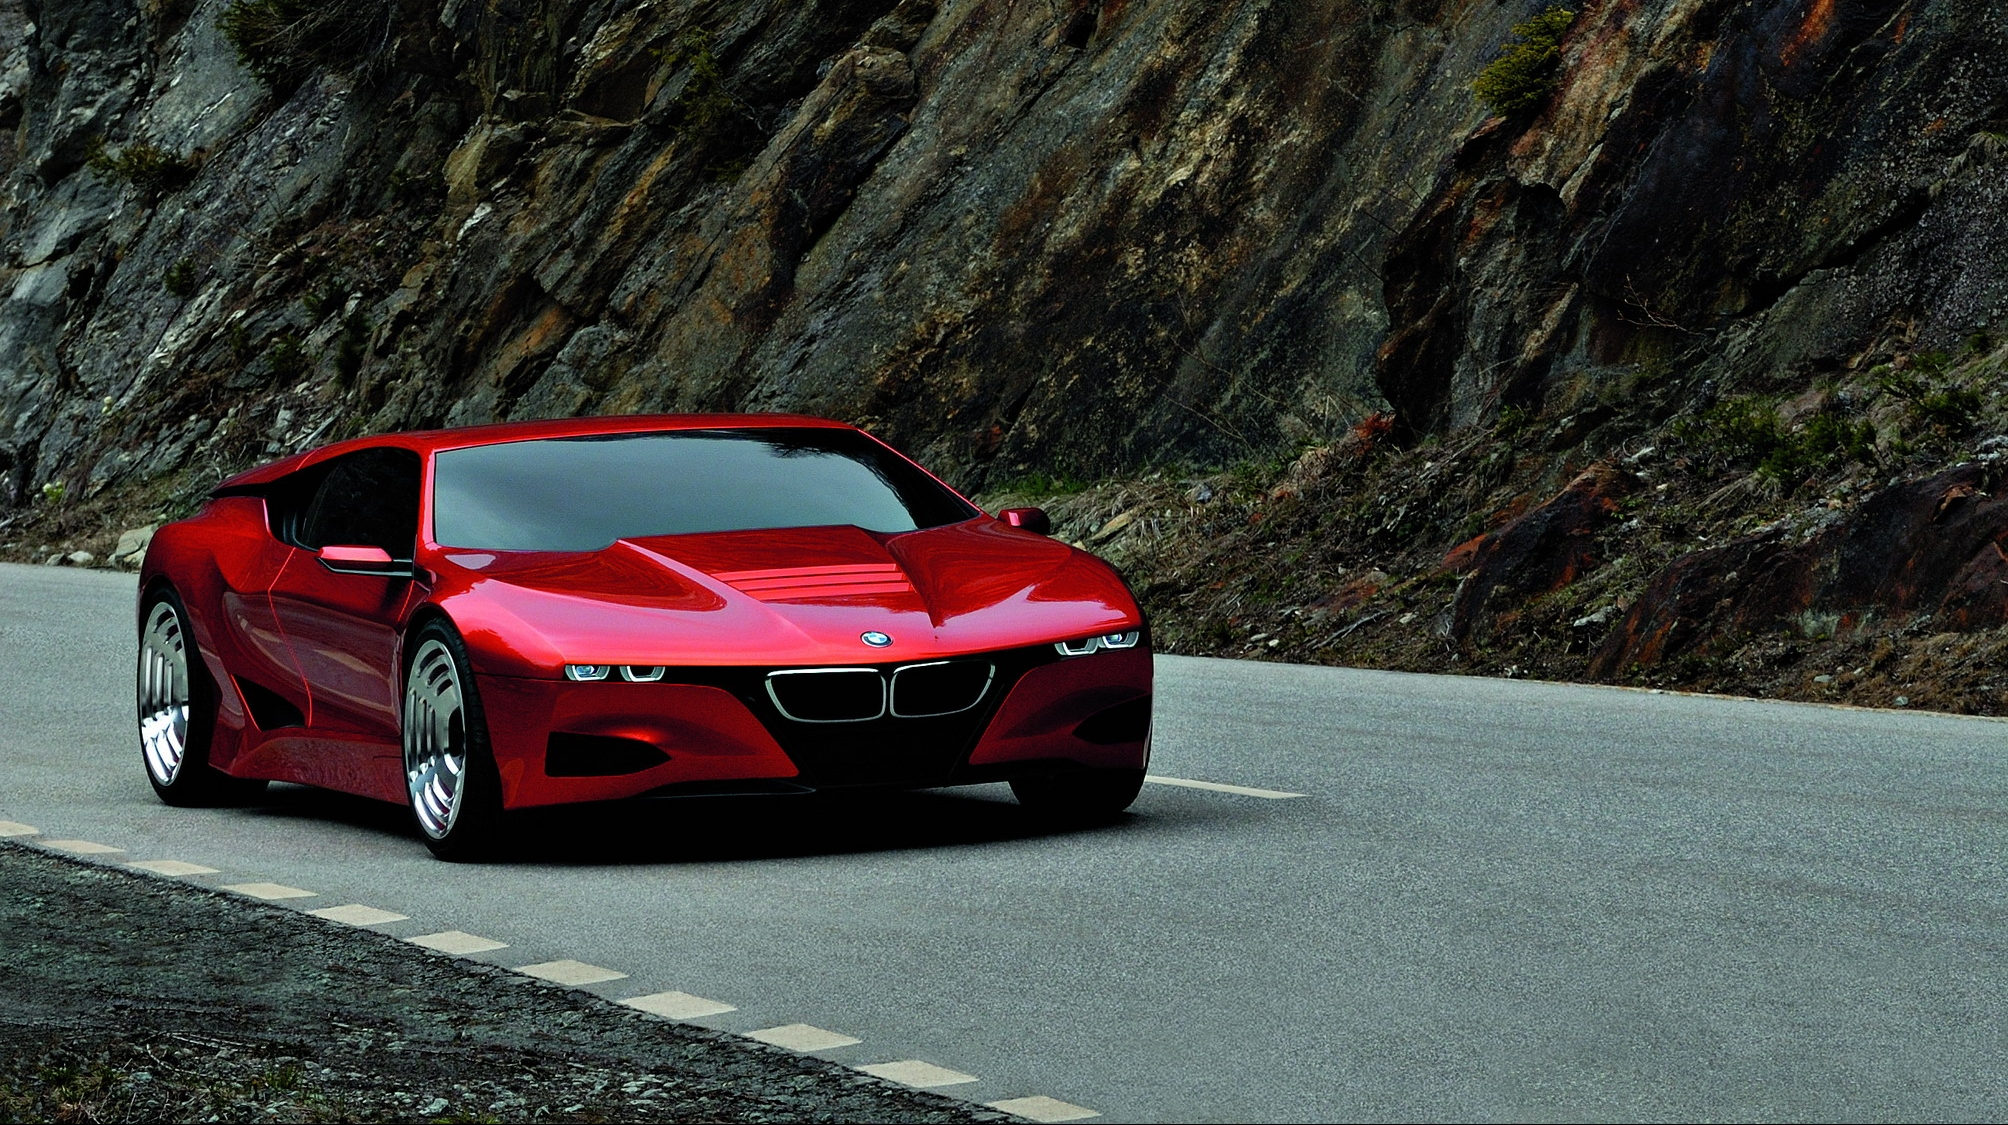 Future Car Wallpaper 2008 Bmw M1 Hommage Top Speed